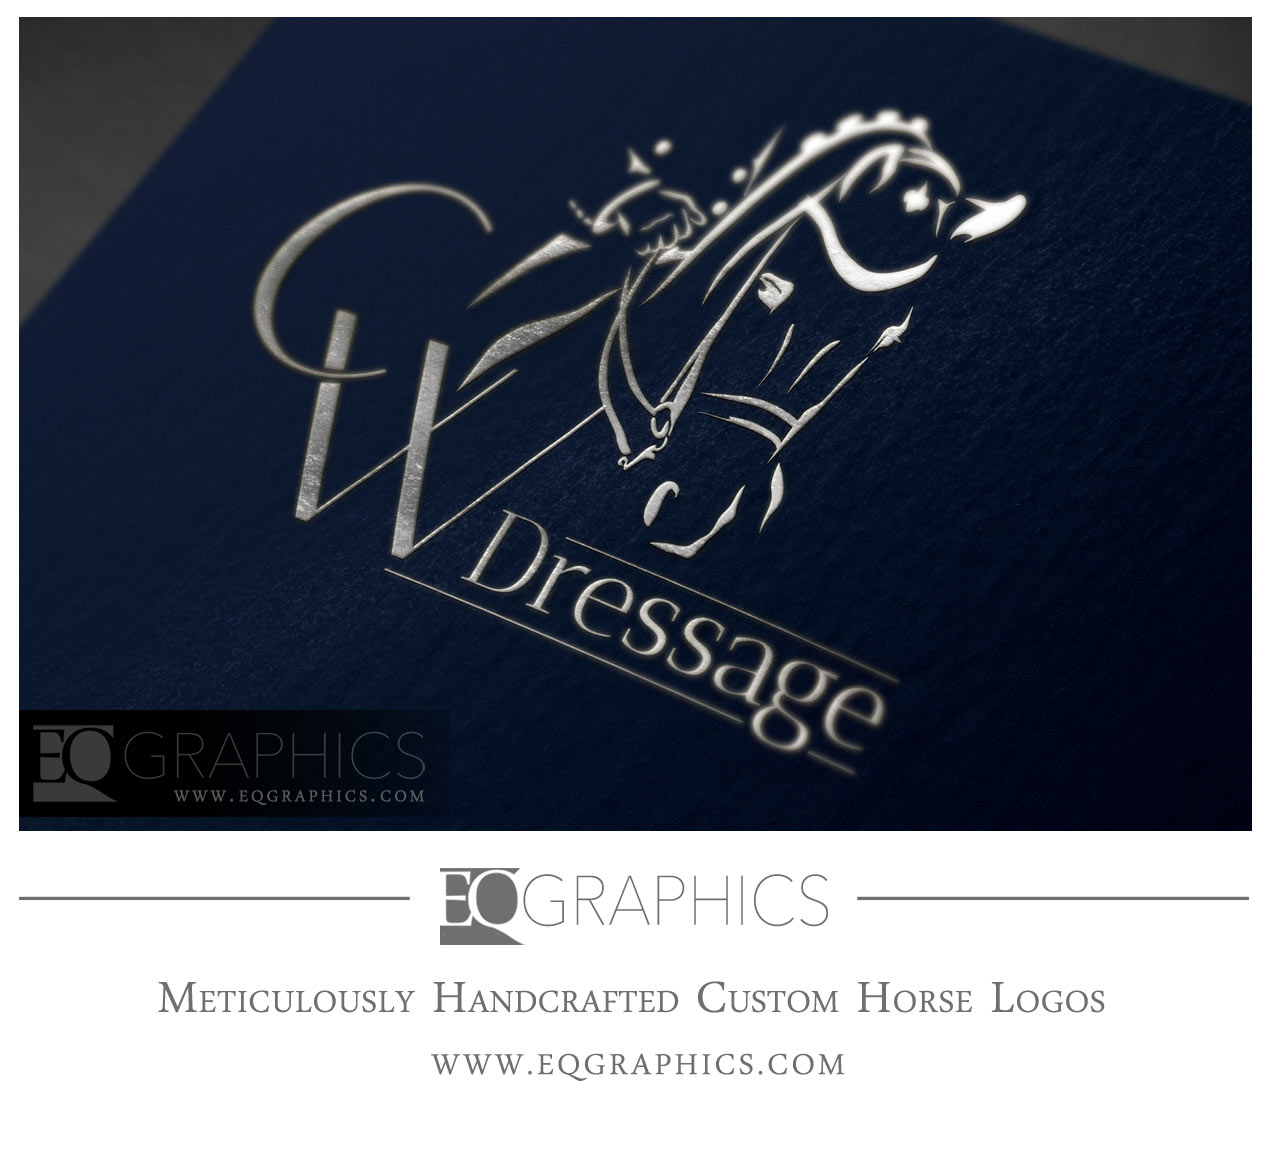 CW Dressage Logo Design by EQ Graphics Equine Logos